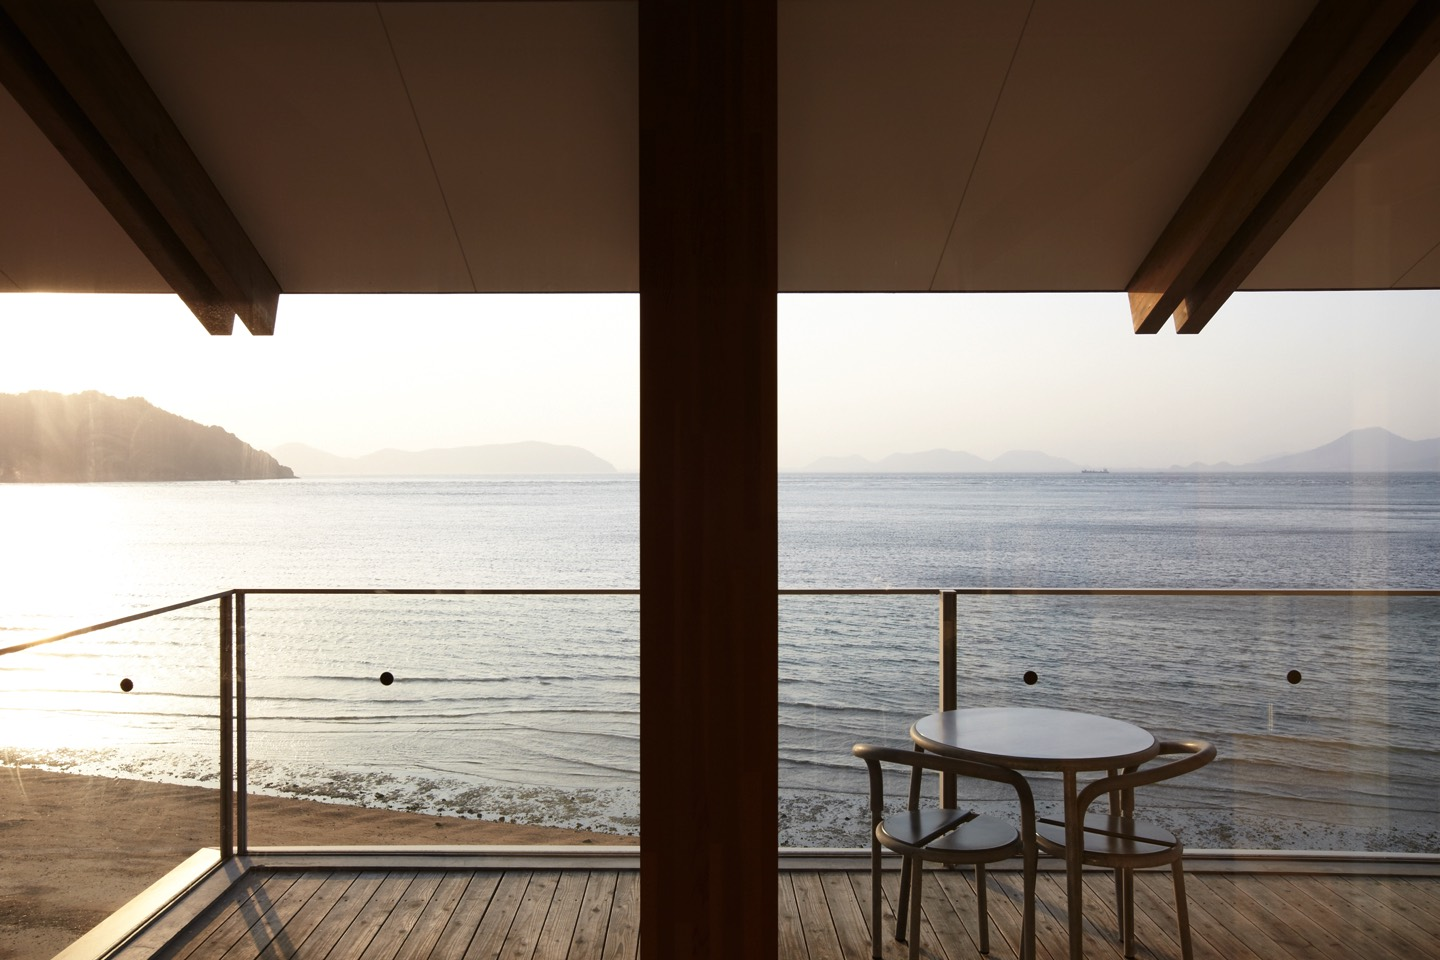 Beach | Benesse House | Stay | Benesse Art Site Naoshima